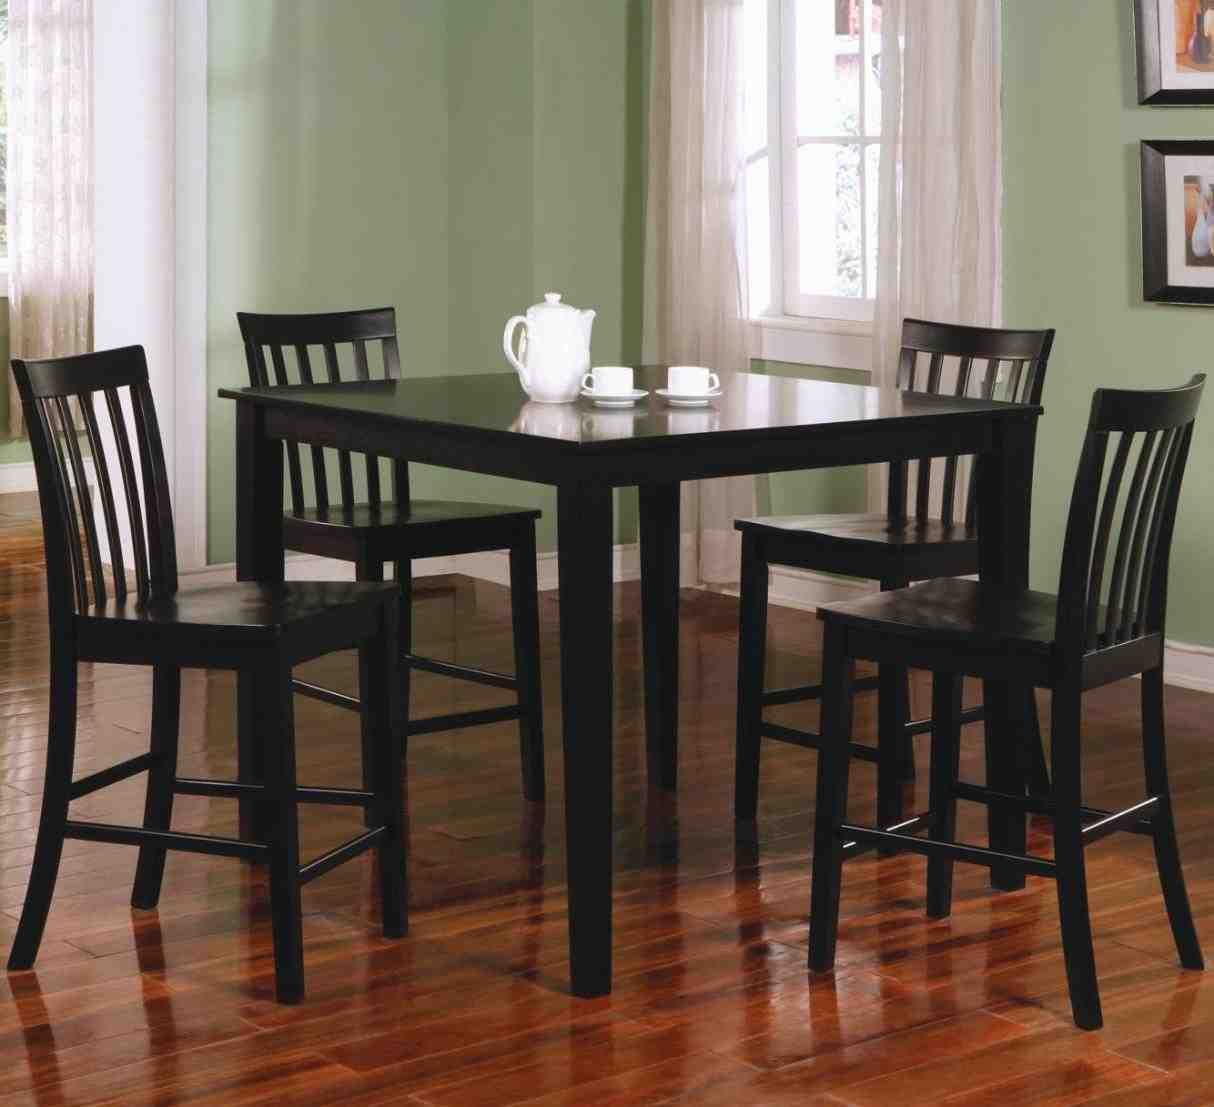 Black Counter Height Dining Table and Chairs - Home ...